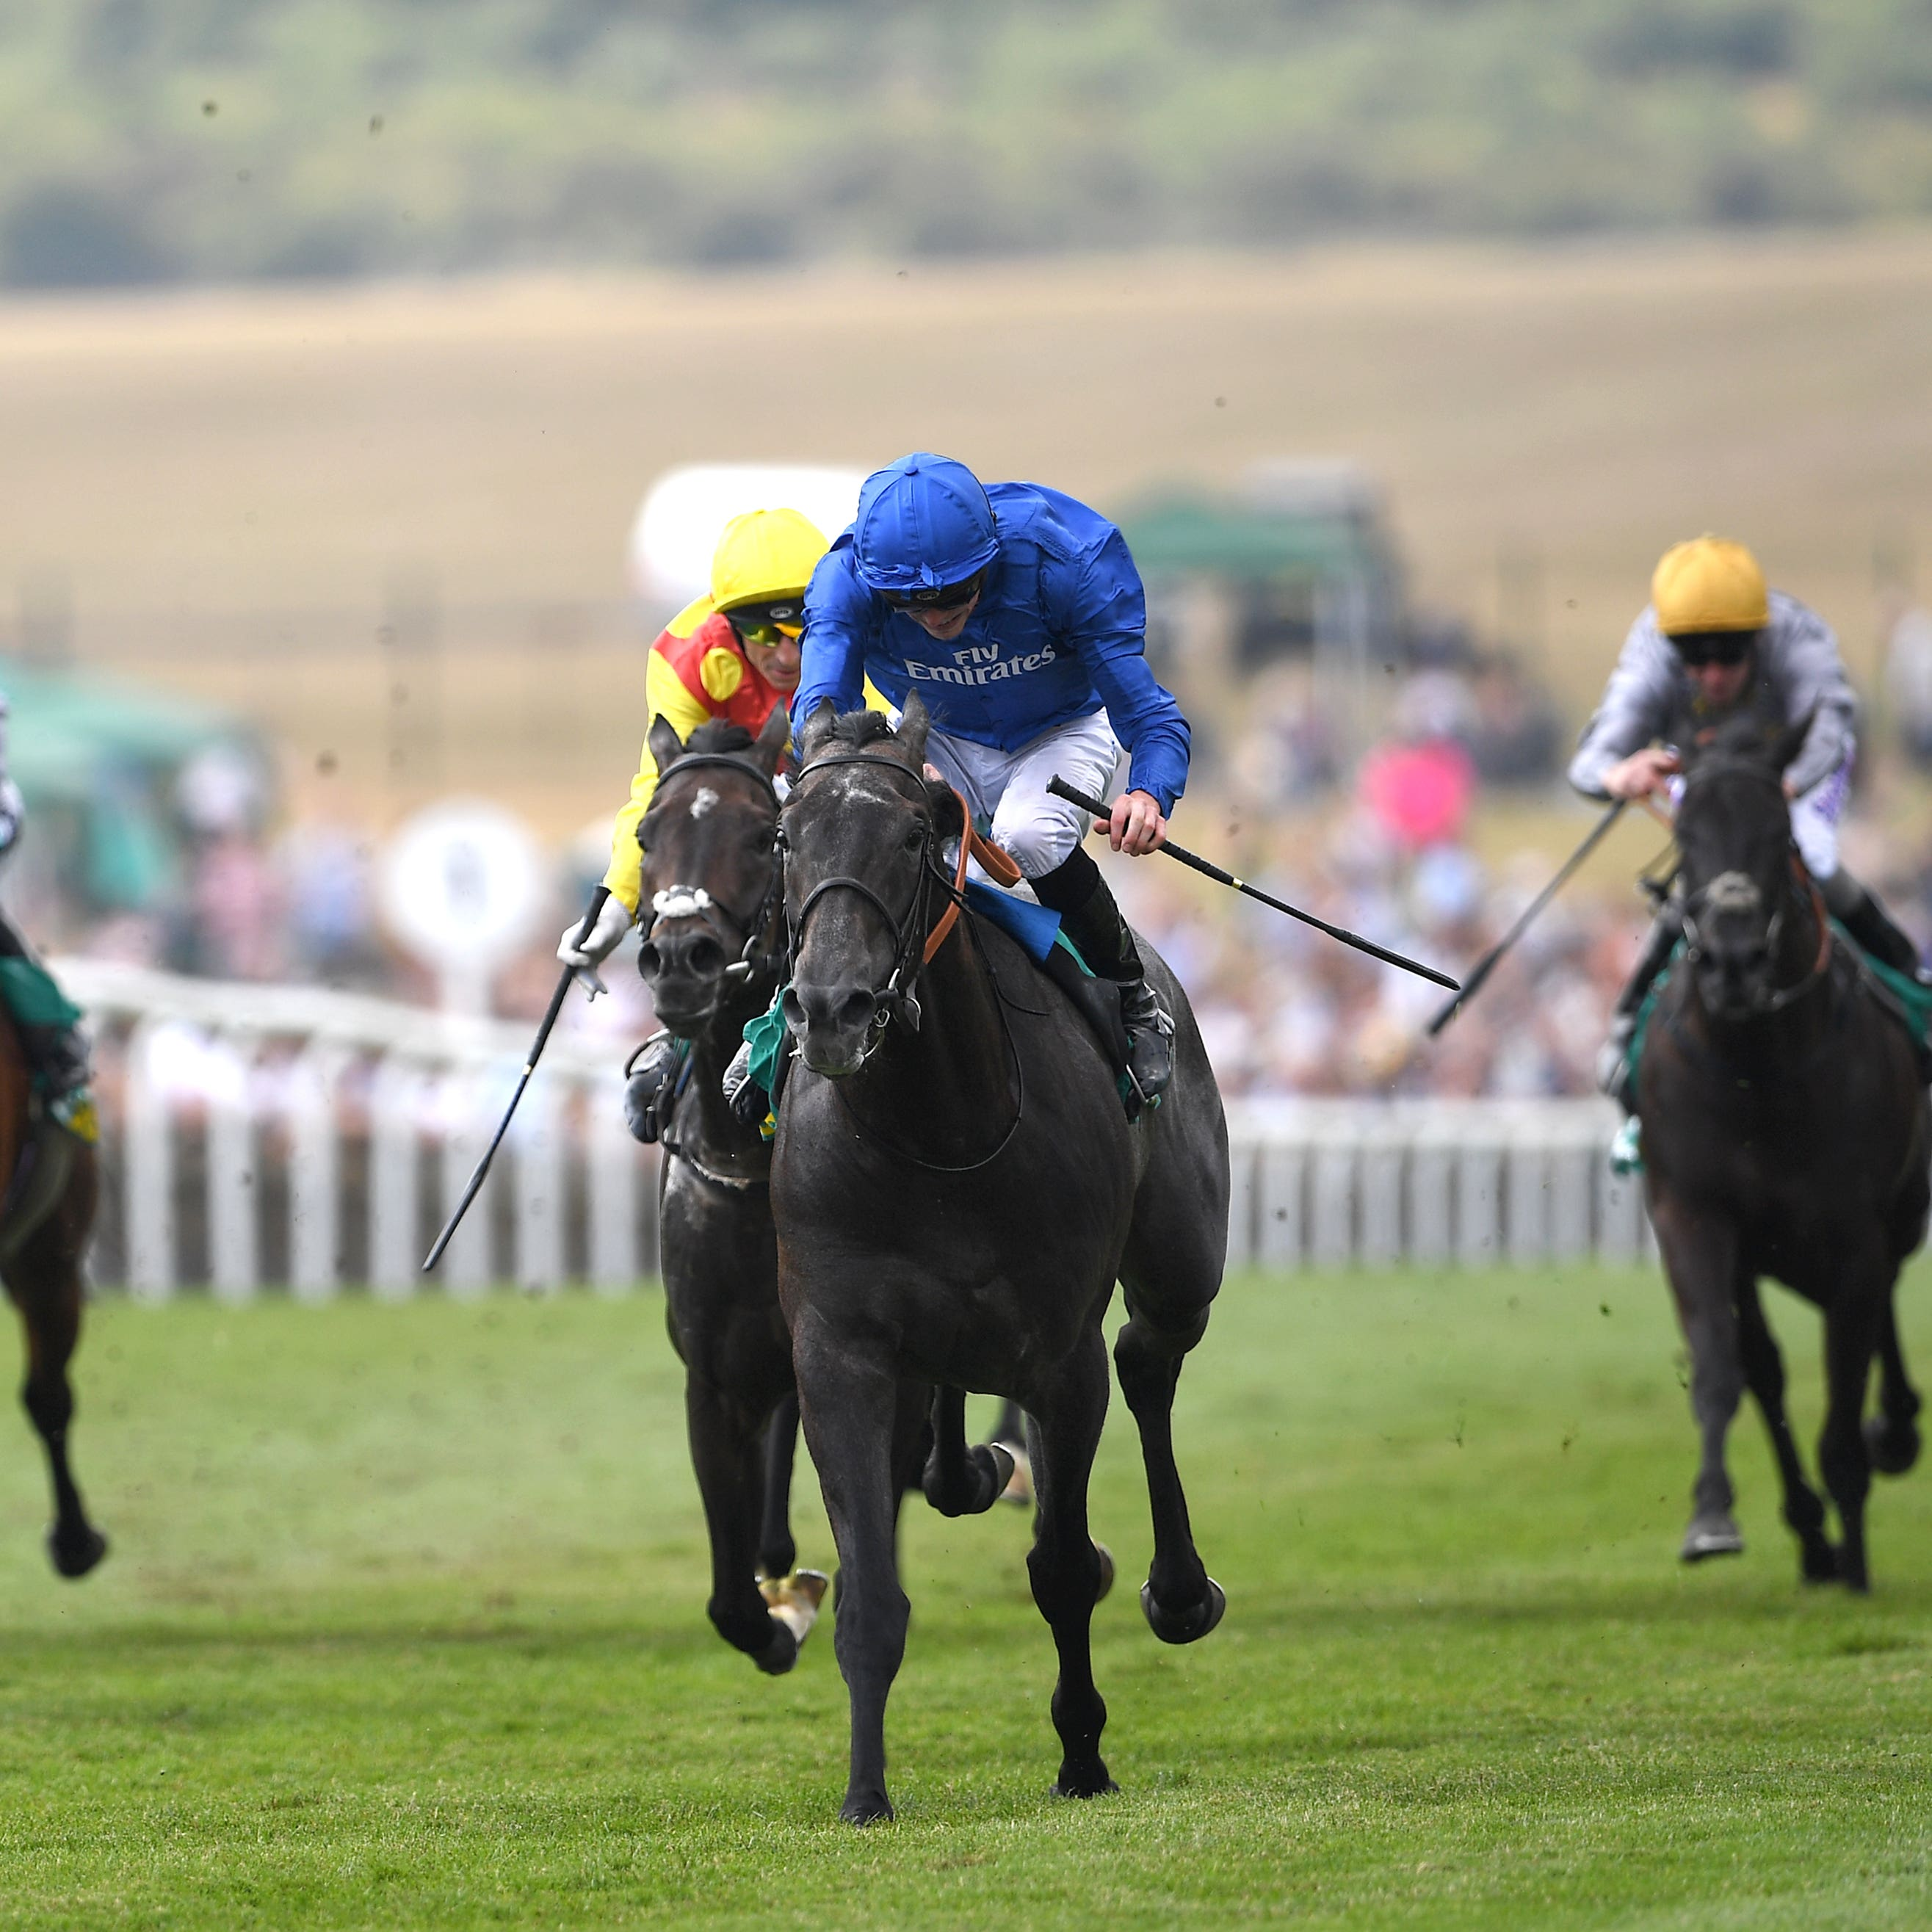 First Contact wins under James Doyle at Newmarket